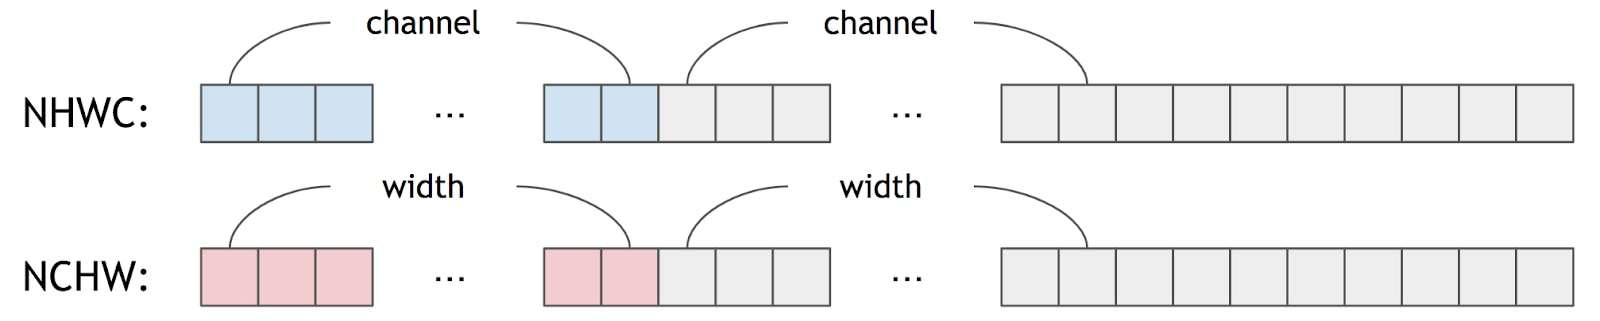 Data Formats for Deep Learning NHWC and NCHW